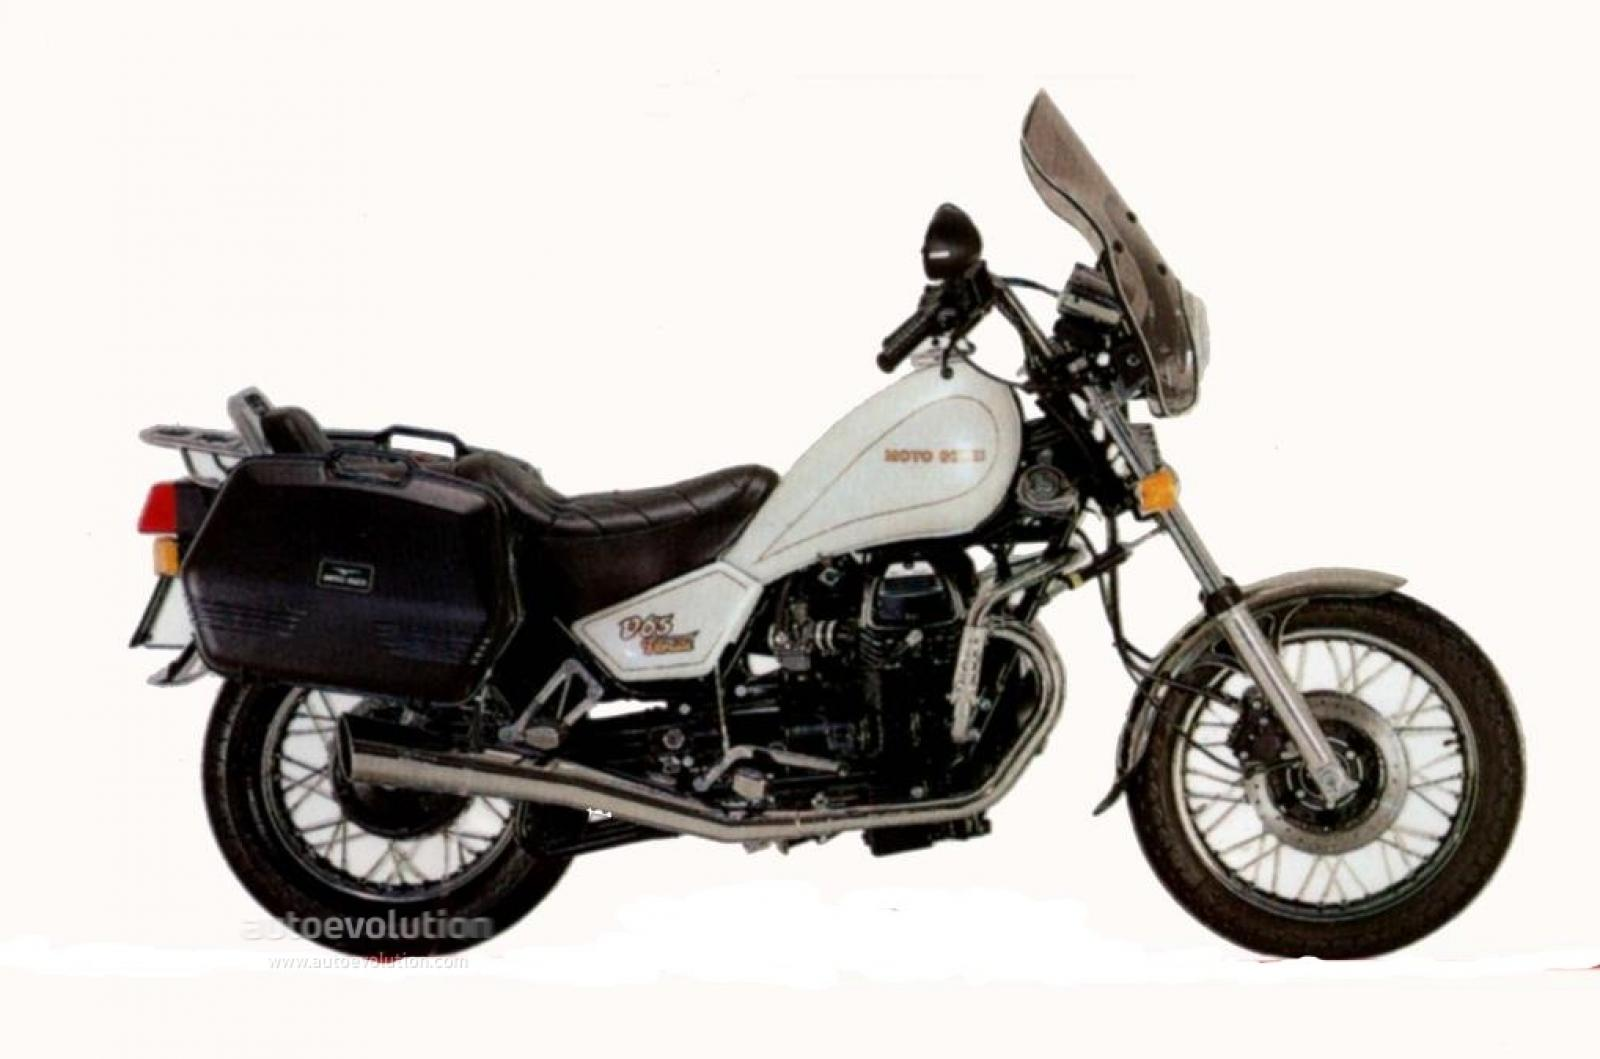 Moto guzzi 65 photo - 1